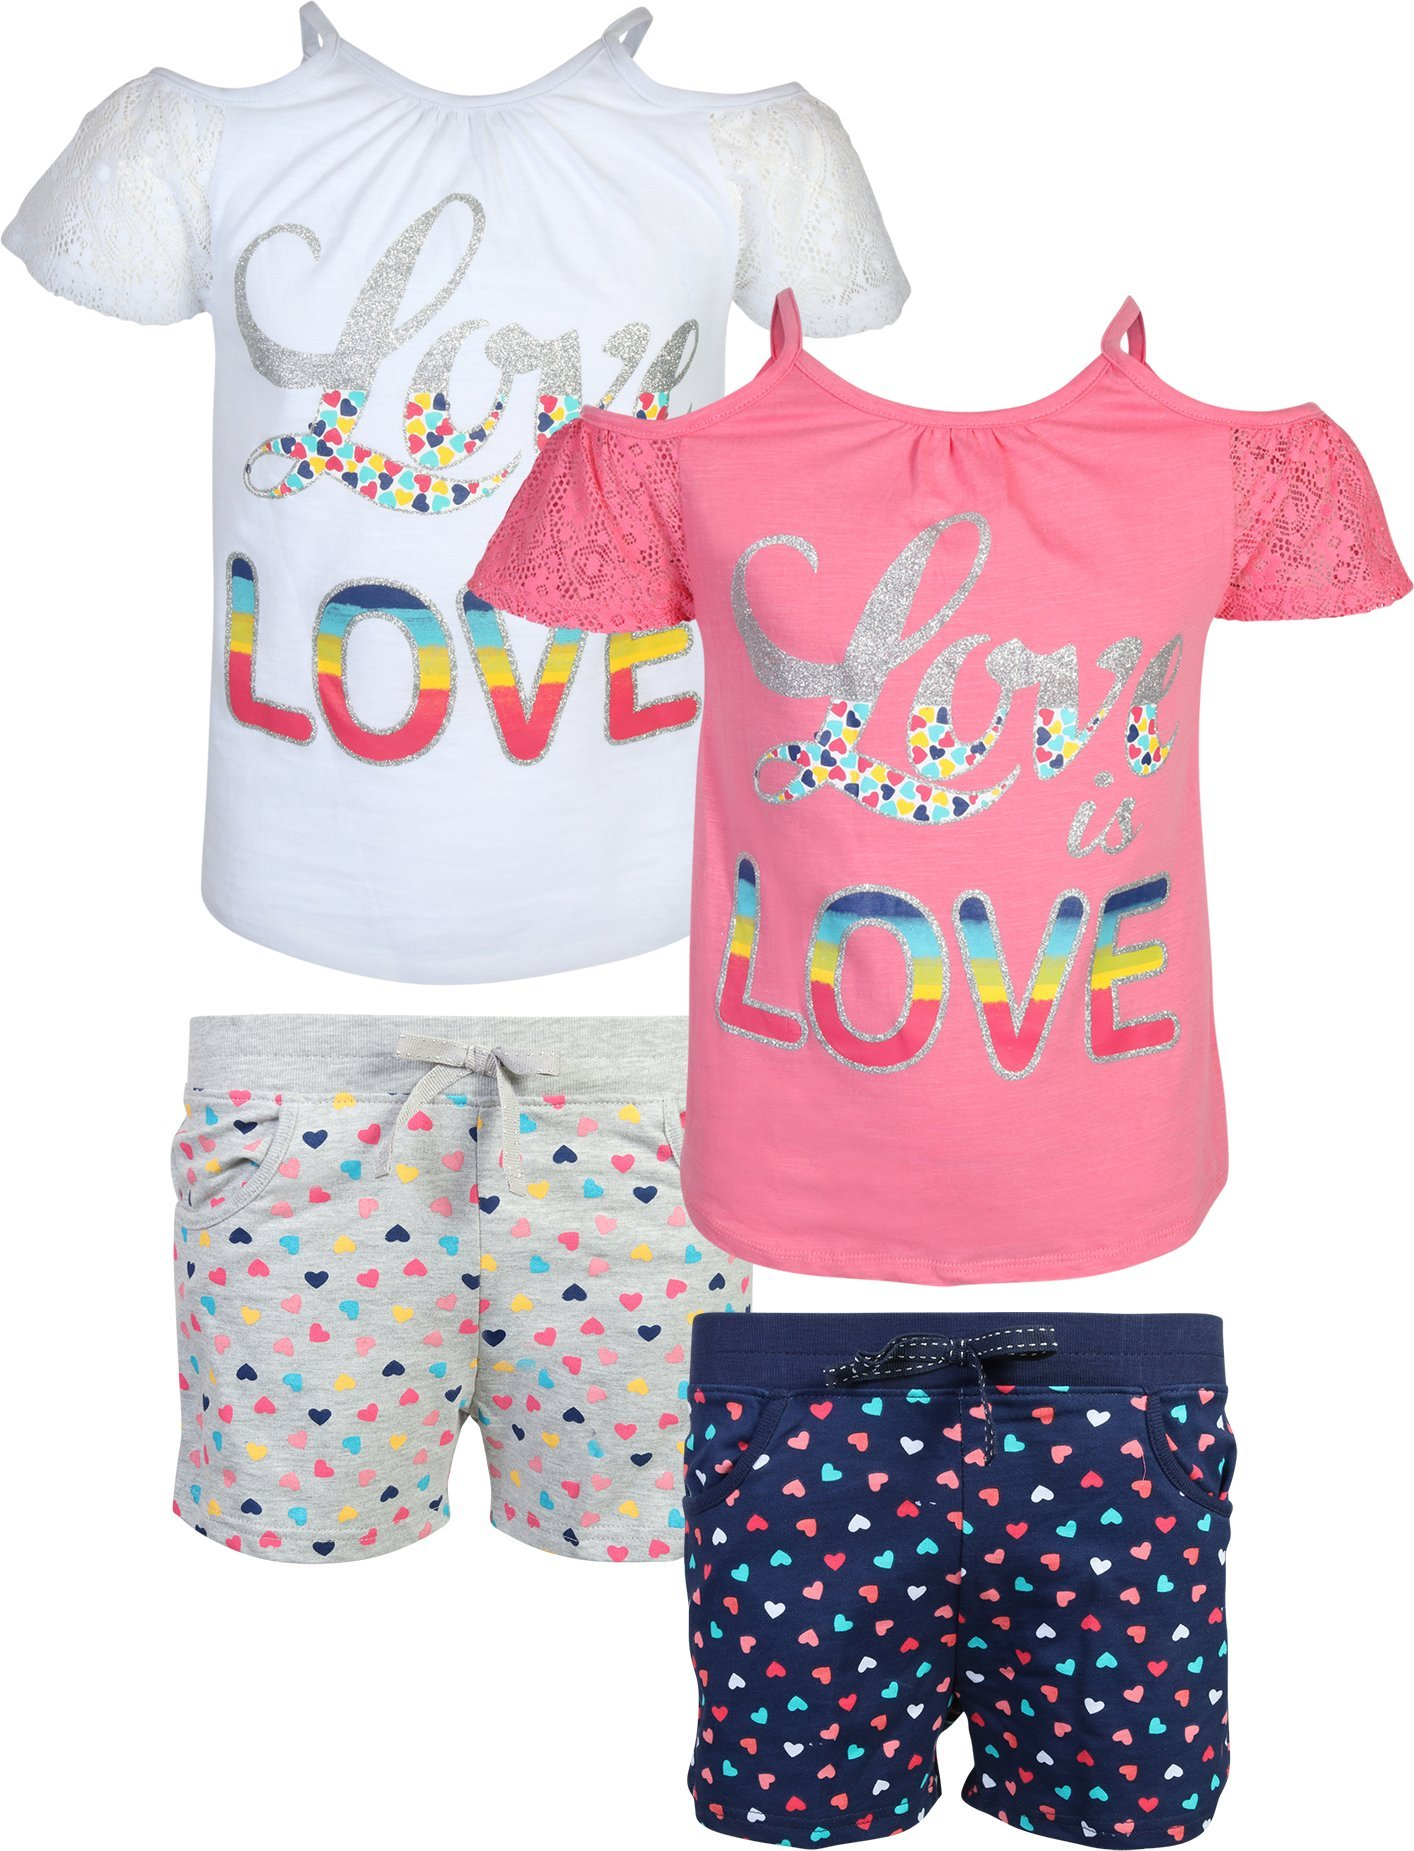 Real Love Girl's 4-Piece French Terry Short Sets, Love is Love, Size 5/6'